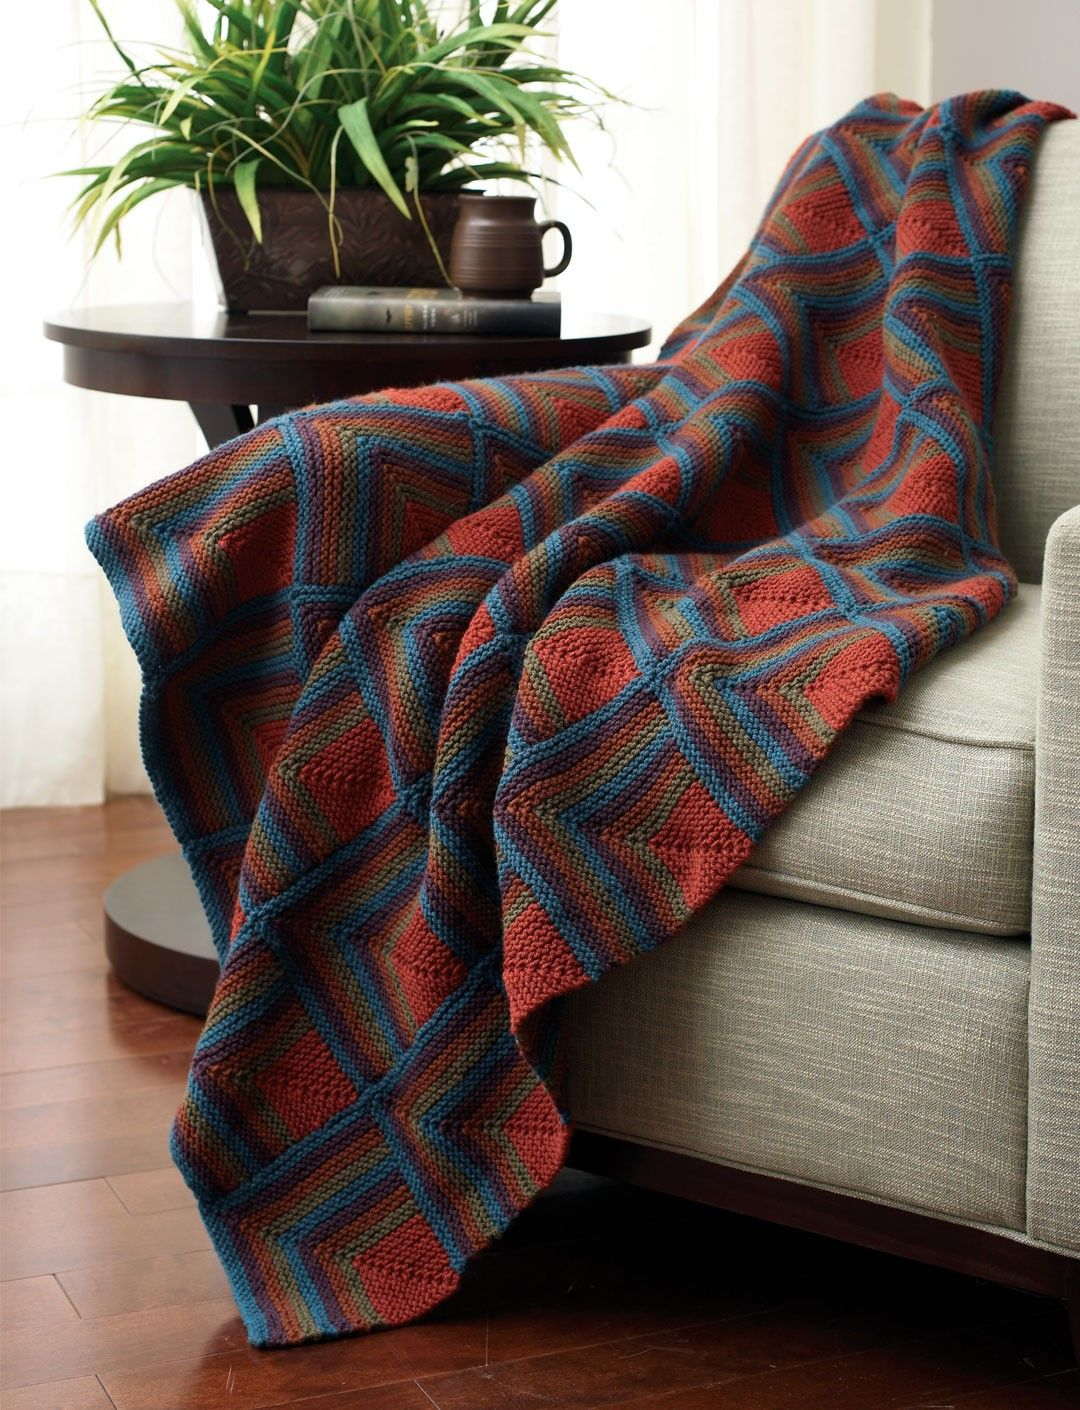 Yarnspirations.com - Bernat Mitered Squares - Patterns ...